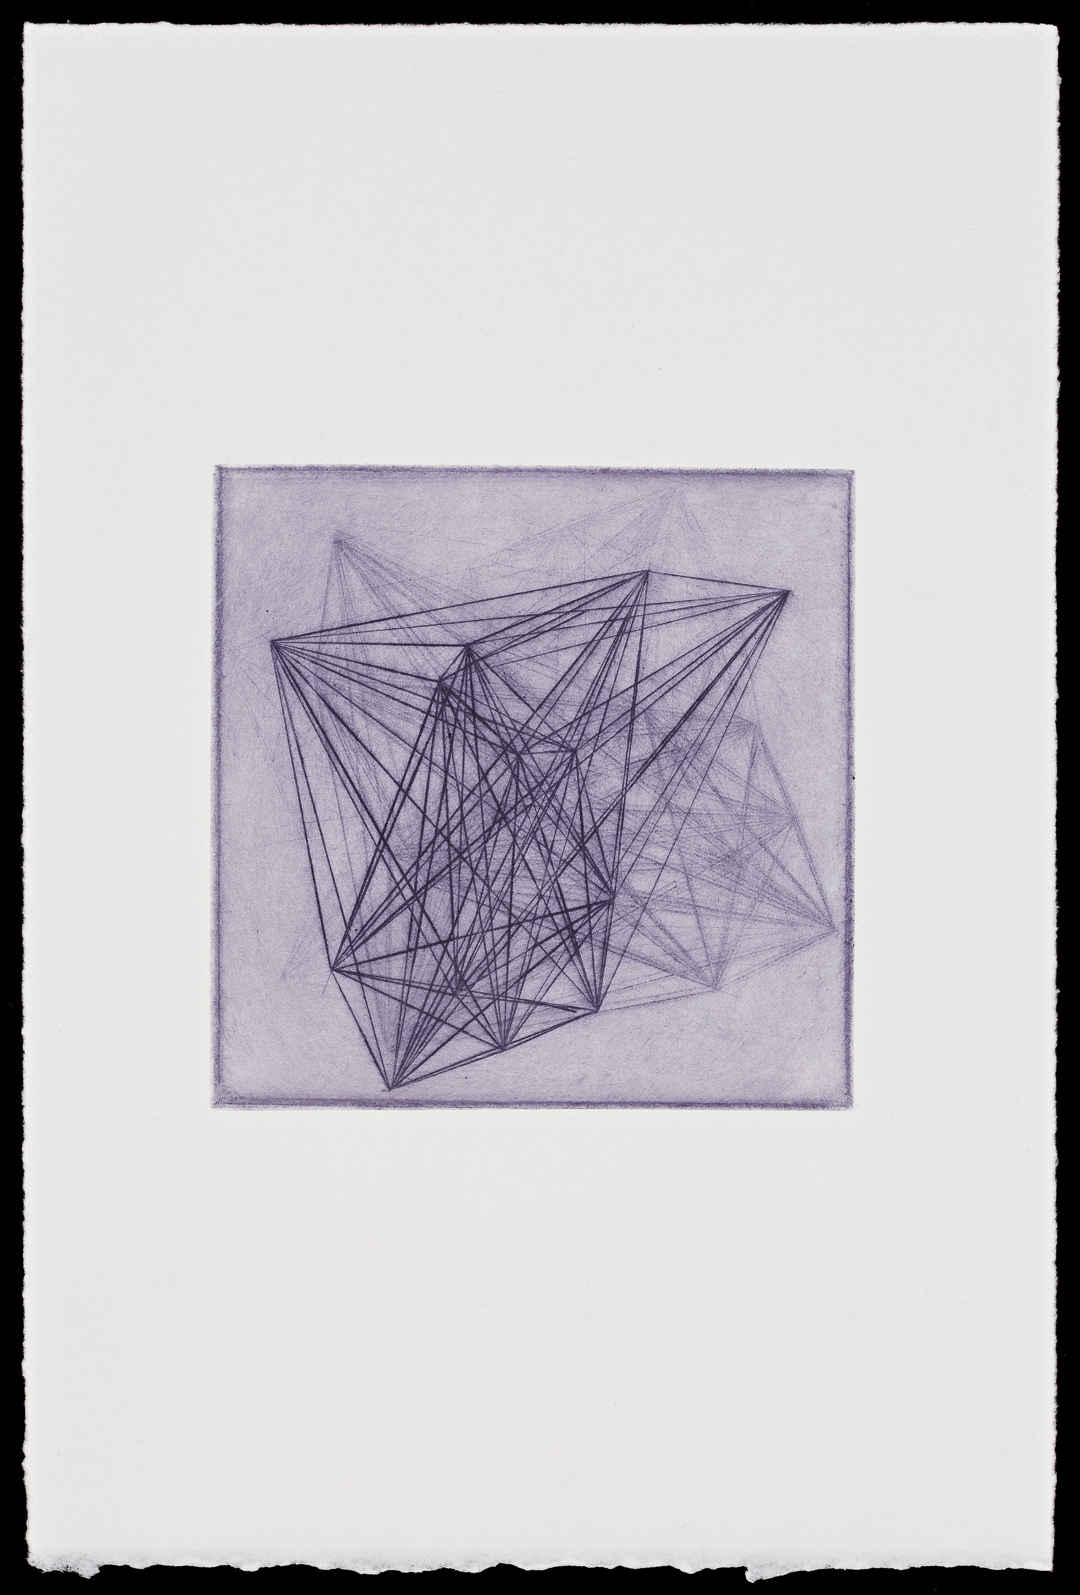 Organic Form 3  (2019), drypoint print on paper, 29 x 19 cm, edition of 6, photo by Document Photography